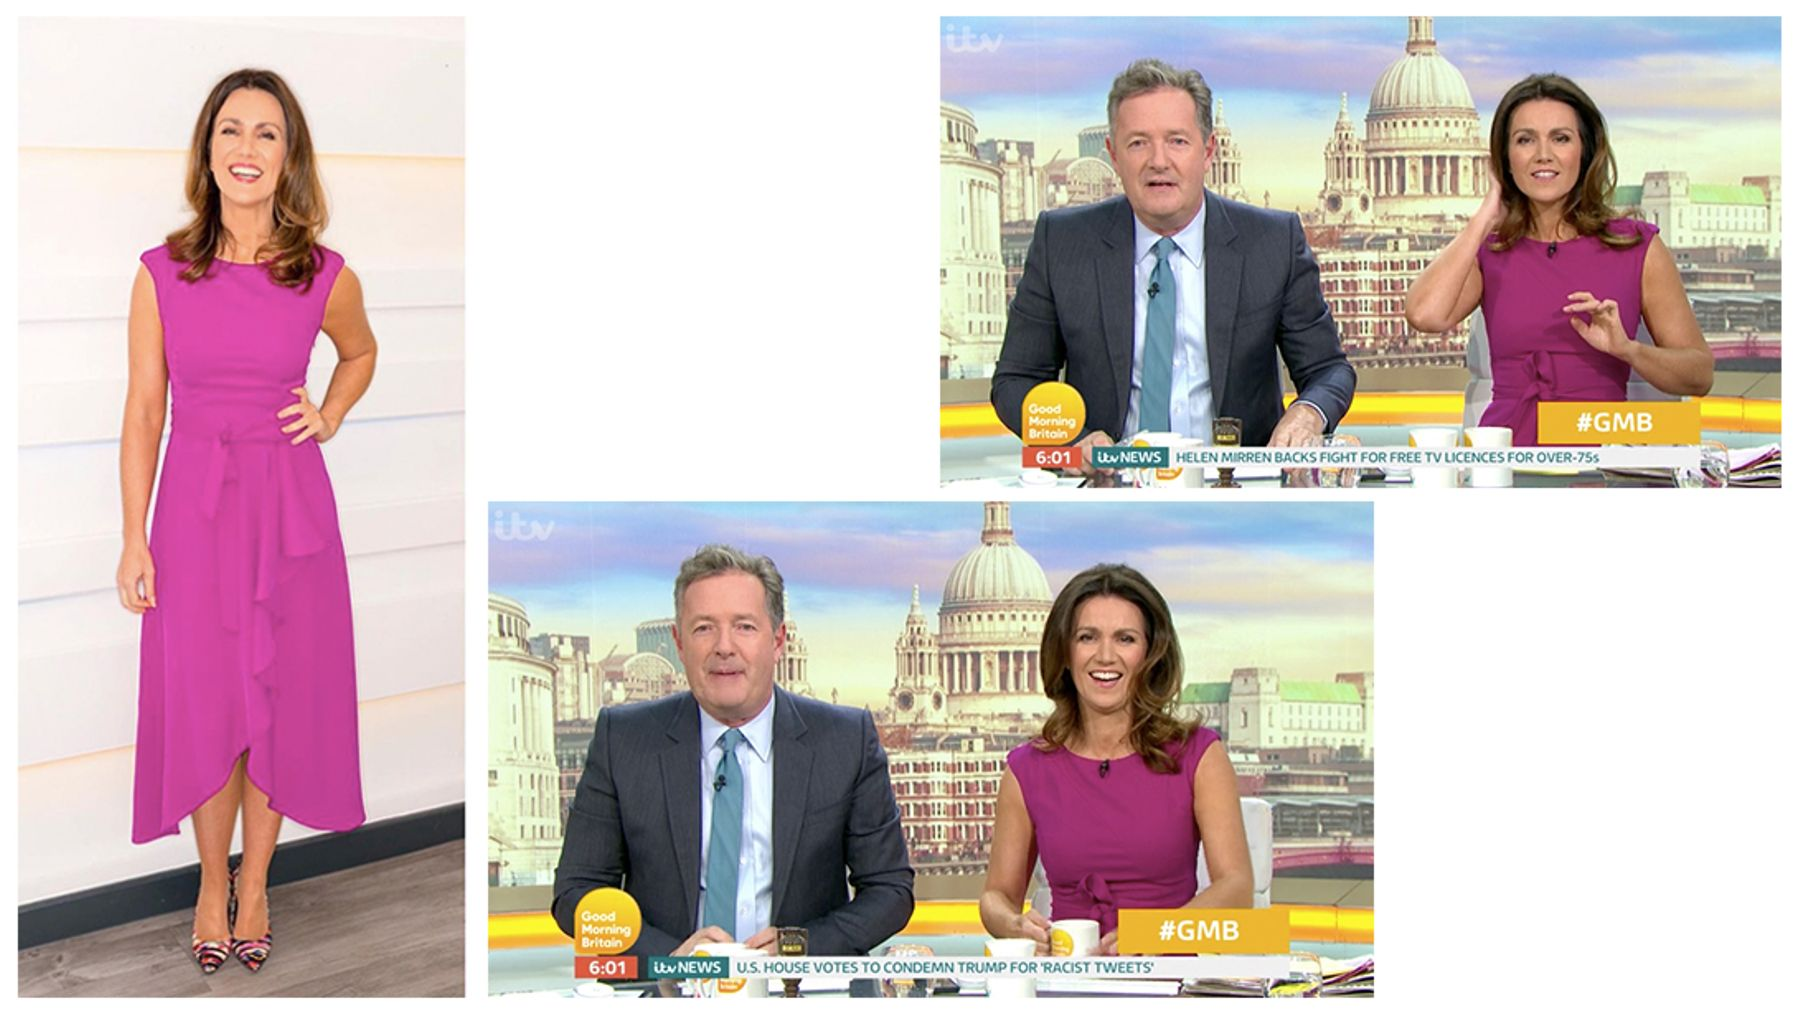 Susanna Reid's outfits from Good Morning Britain - and where to buy